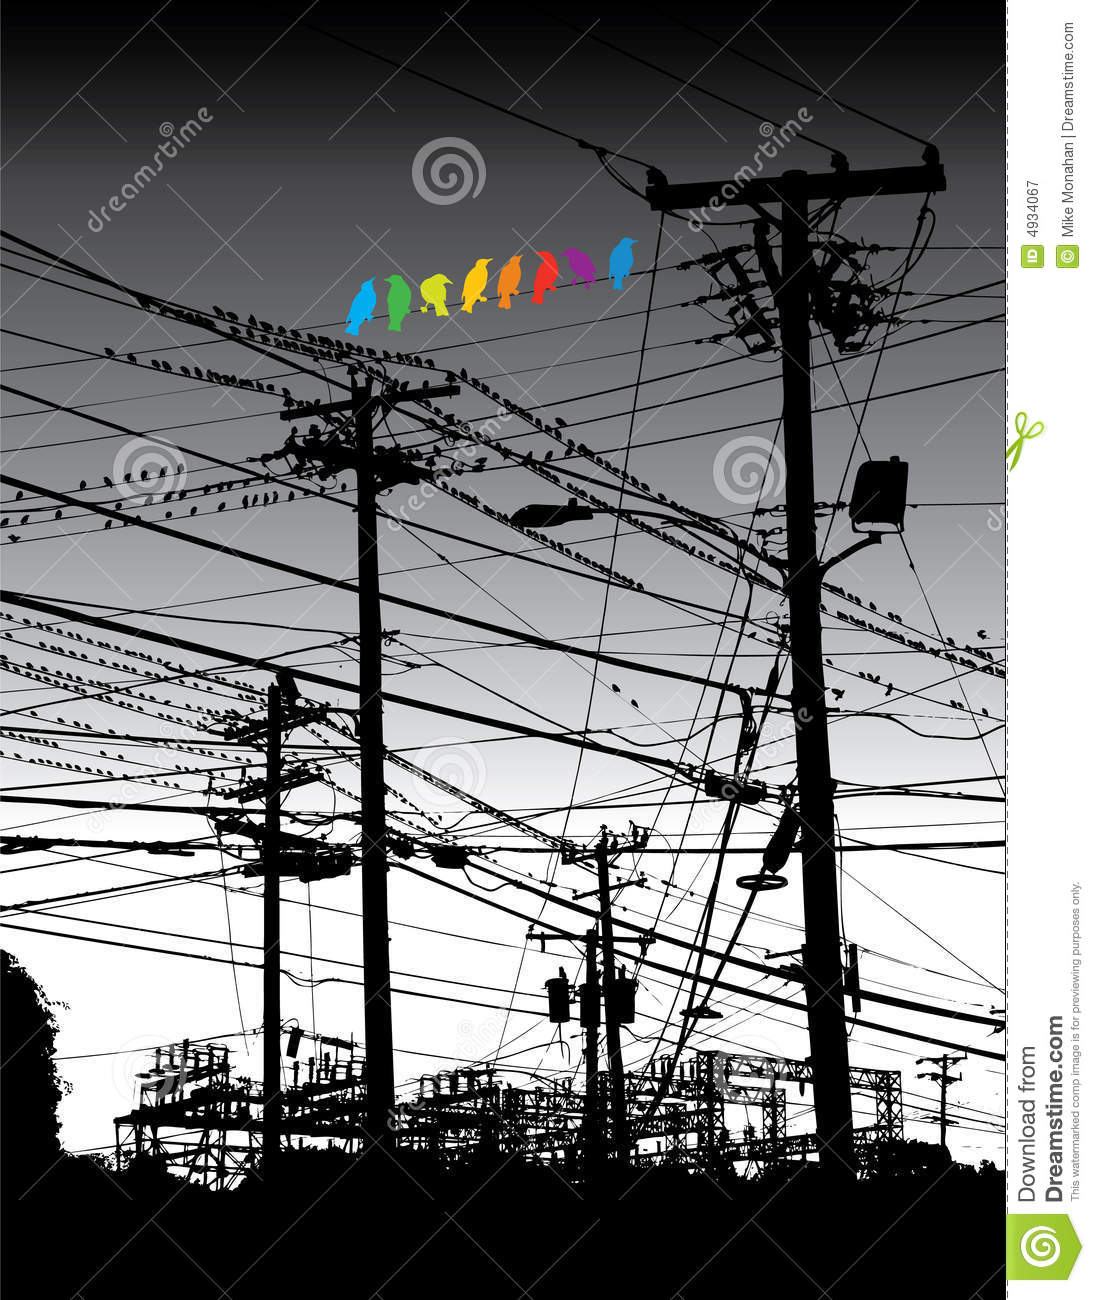 Electrical jungle and birds